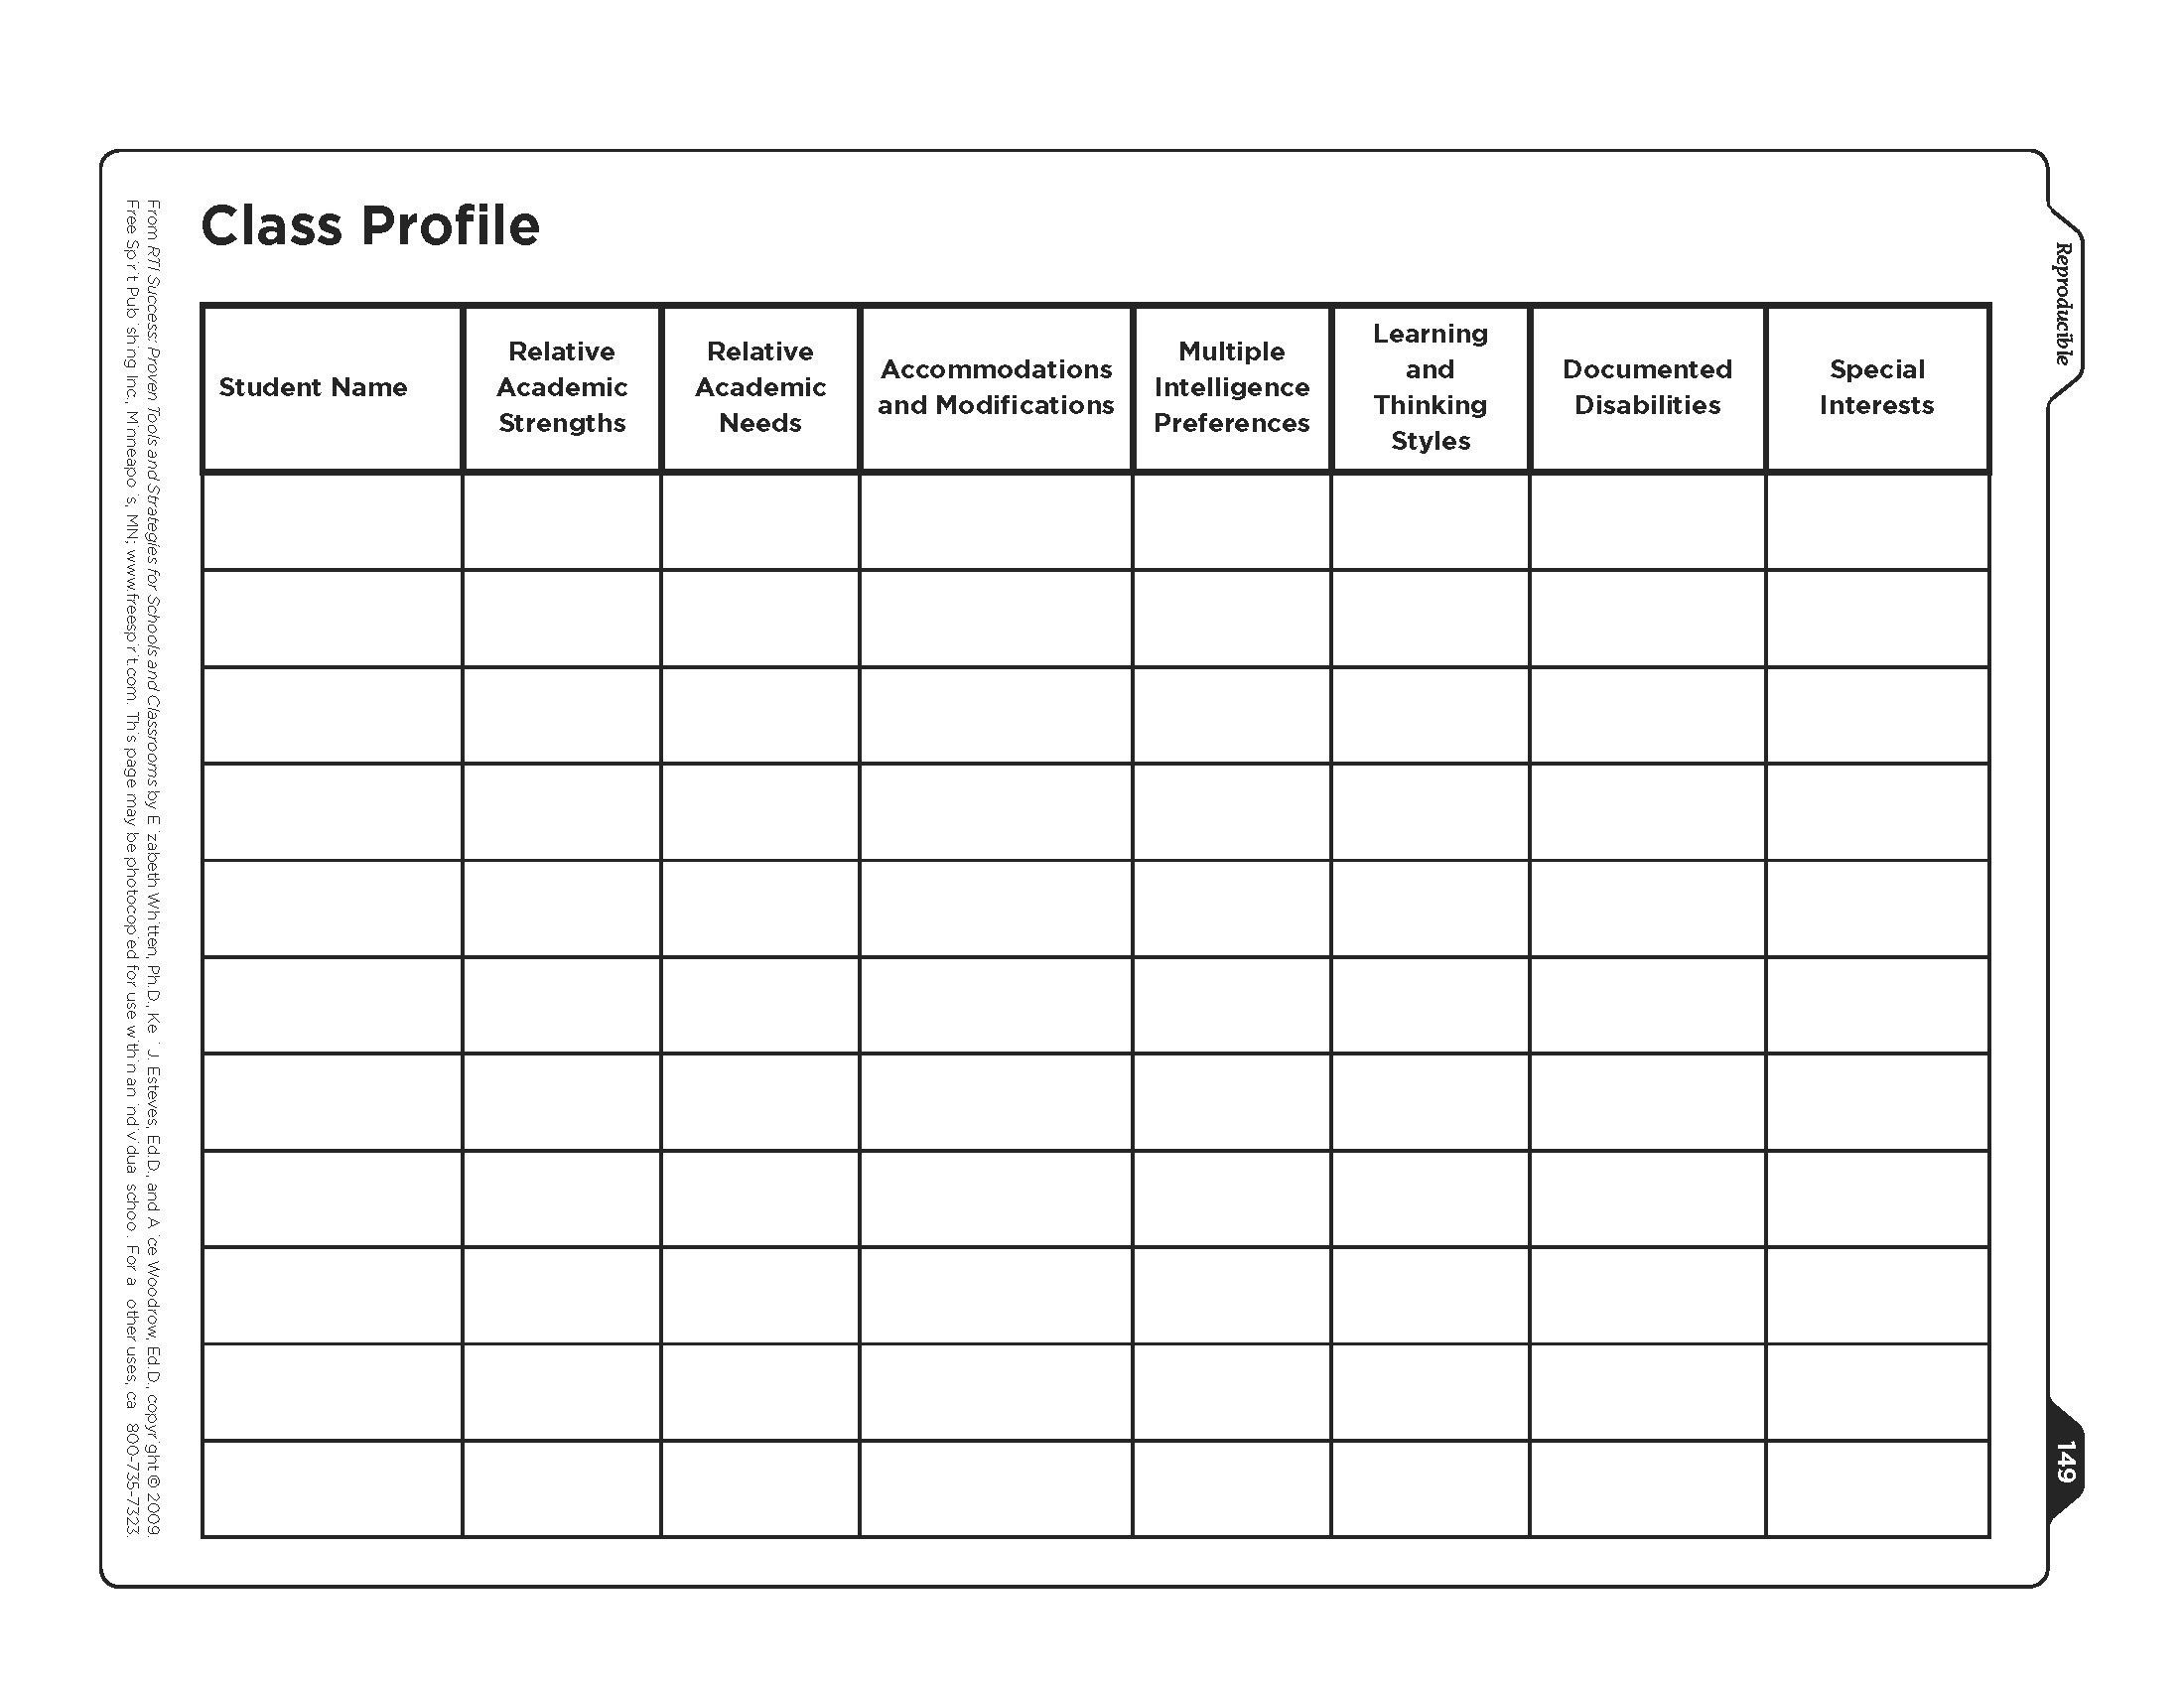 Free Class Profile Worksheet From Rti Success Record Students Relative Academic Strengths Relative Academic Needs Teaching Strategies Elementary Schools Rti